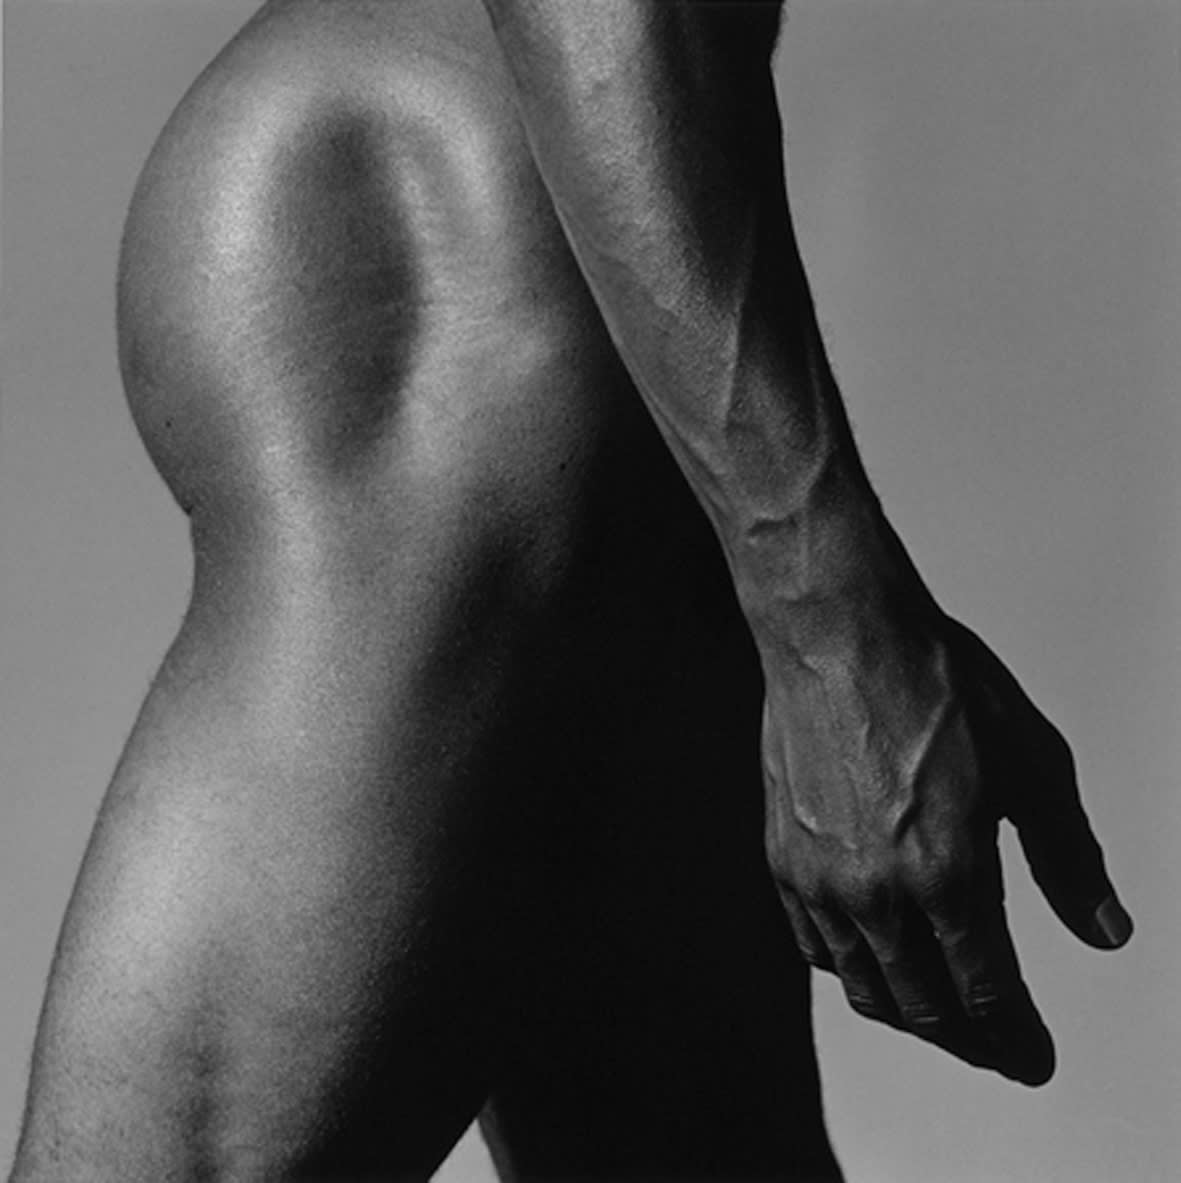 """<span class=""""link fancybox-details-link""""><a href=""""/exhibitions/120/works/artworks7740/"""">View Detail Page</a></span><div class=""""artist""""><strong> Robert Mapplethorpe</strong></div><div class=""""title""""><em>Alistair Butler</em>, 1980 / printed 2009</div><div class=""""signed_and_dated"""">unsigned</div><div class=""""medium"""">gelatin silver print</div><div class=""""dimensions"""">image: 35.1 x 35.20 cm<br>framed: 58.9 x 54.2 cm</div><div class=""""edition_details""""></div>"""